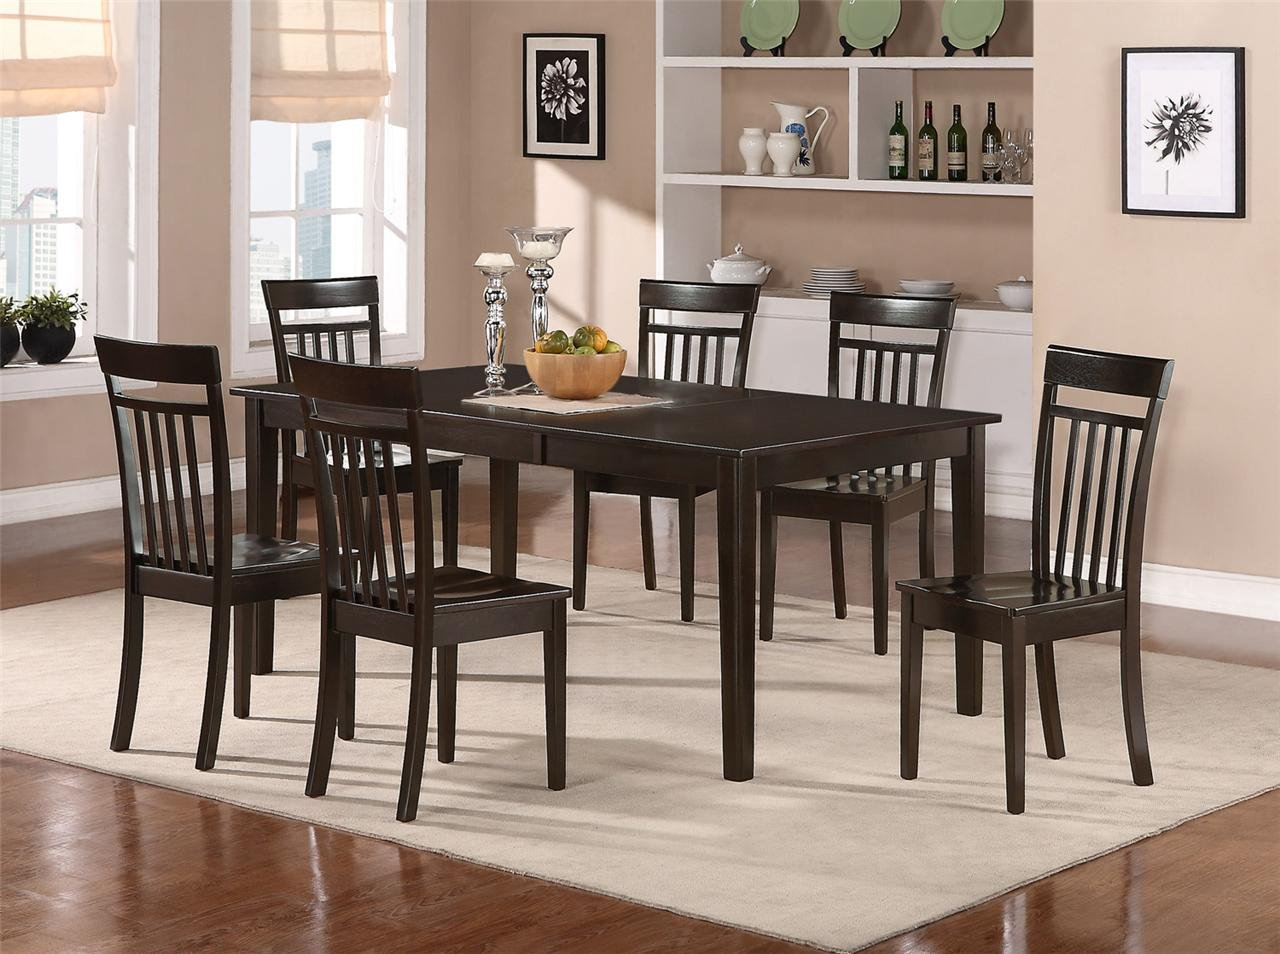 rubberwood butterfly table with 4 chairs turkey hunting 5pc henley dining capri wood seat in